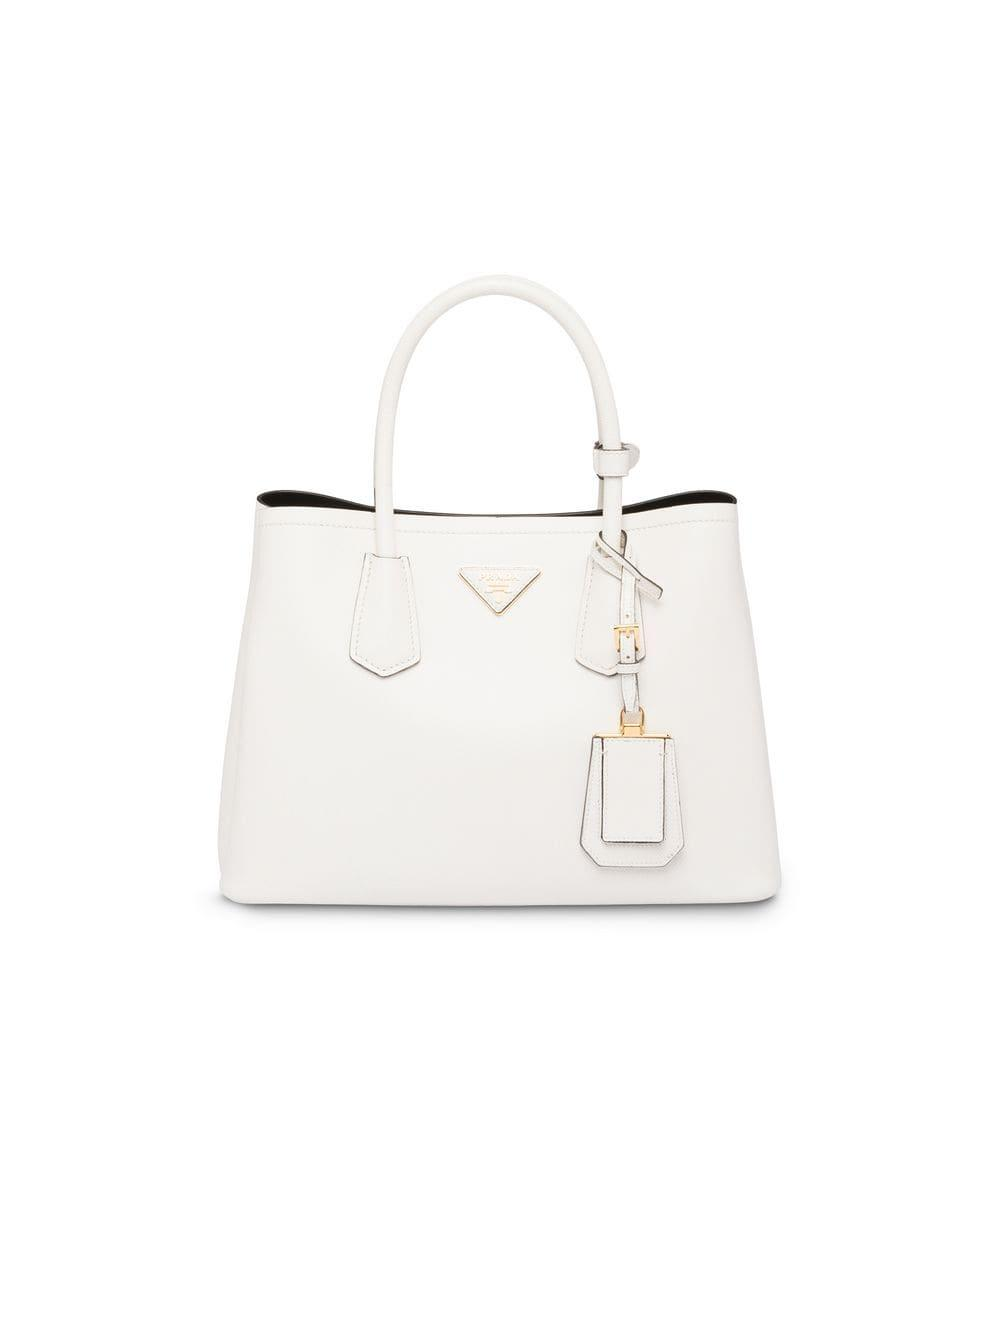 c15dbf6c79b9 Prada Double Small Tote Bag in White - Lyst